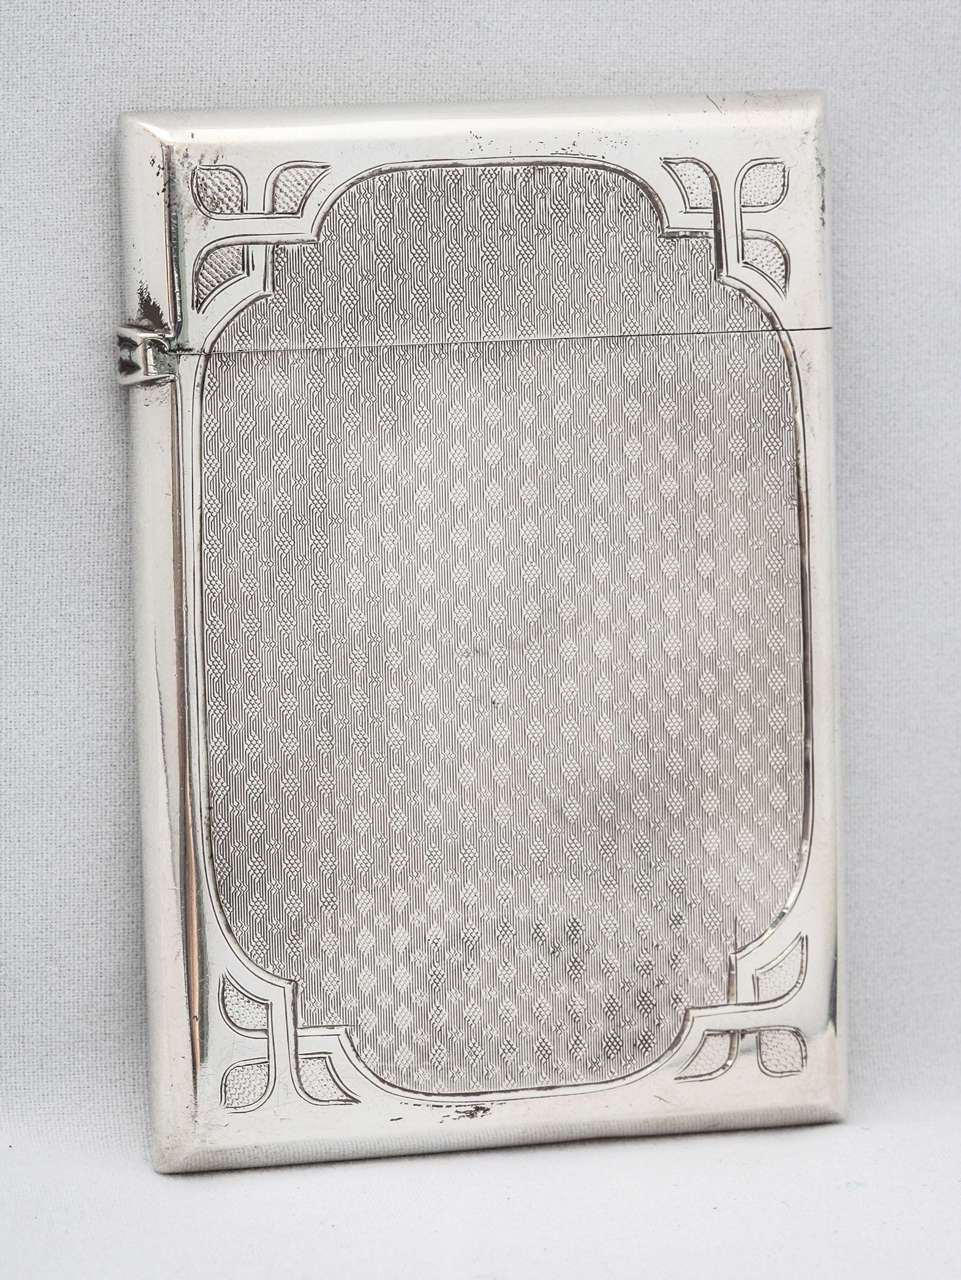 American Coin Silver Calling Card Case In Excellent Condition For Sale In New York, NY